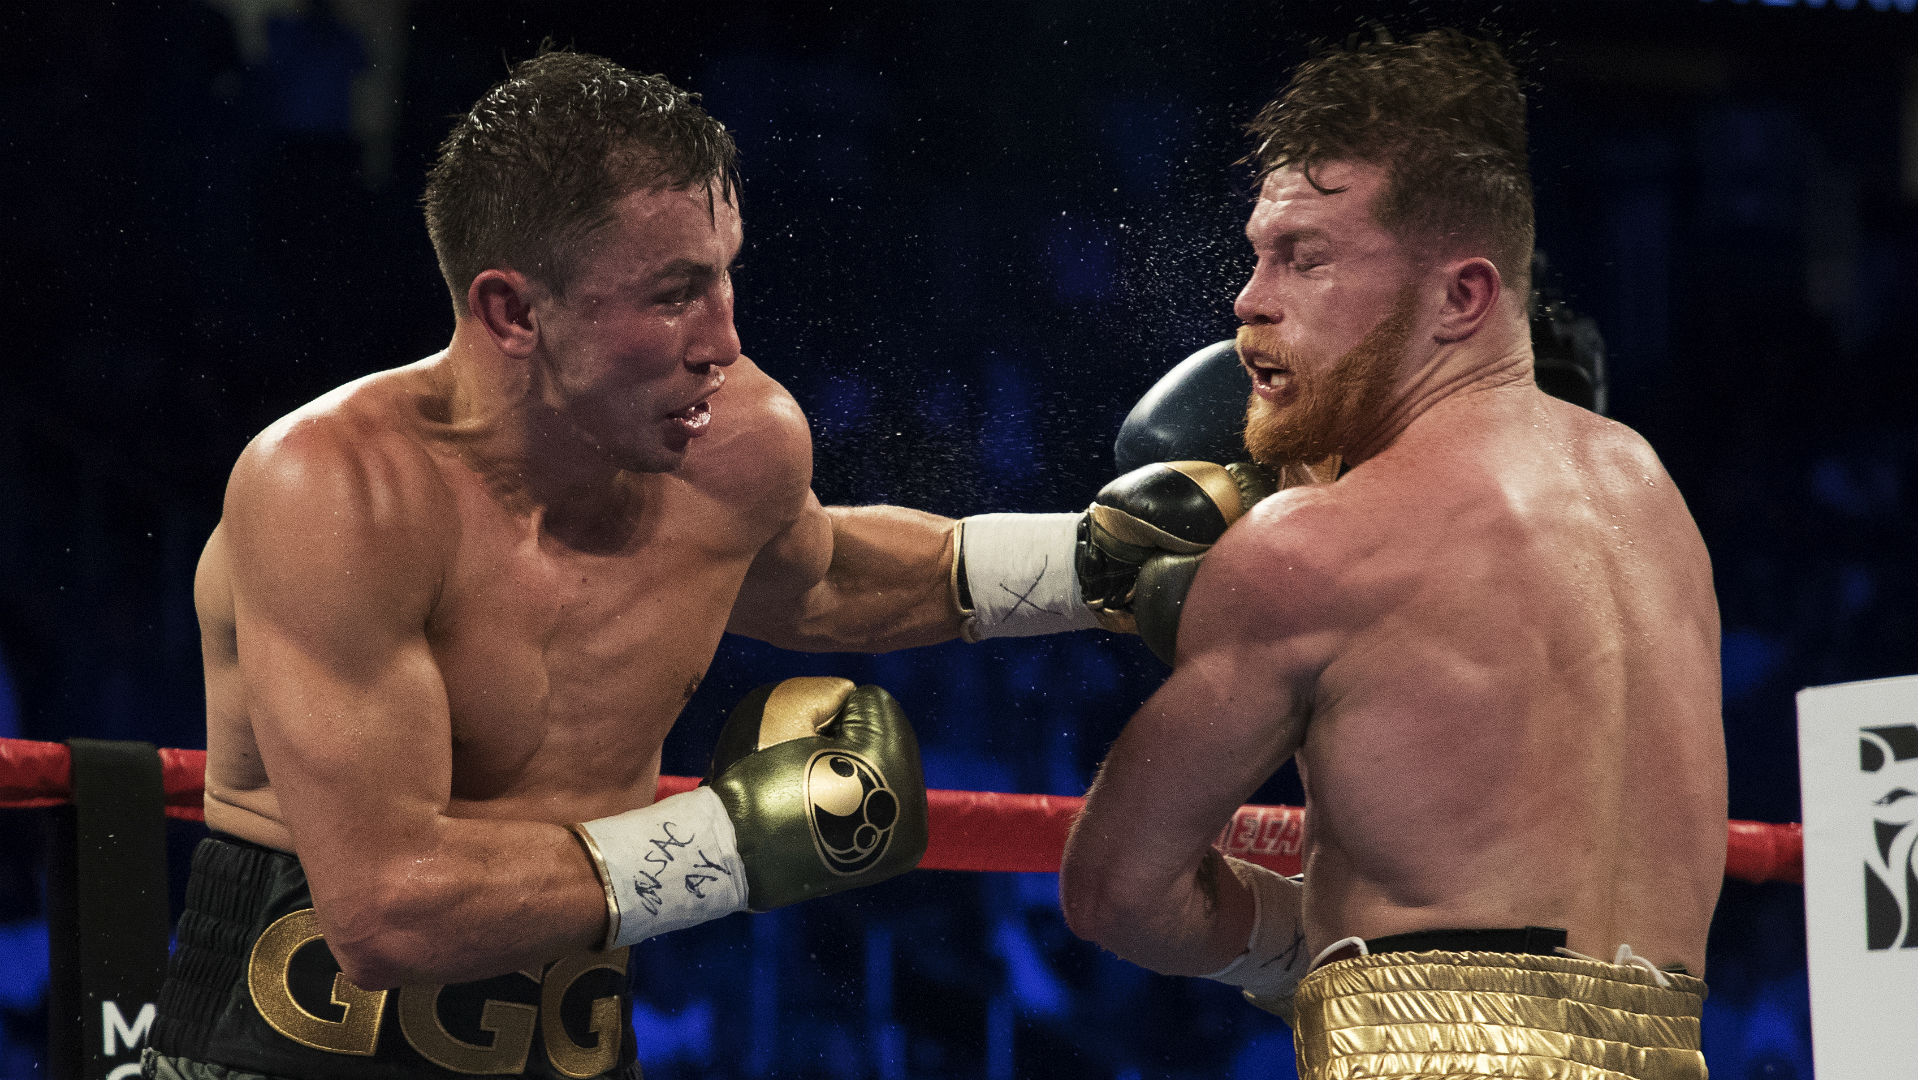 Canelo Alvarez claims middleweight title with narrow win over Gennady Golovkin